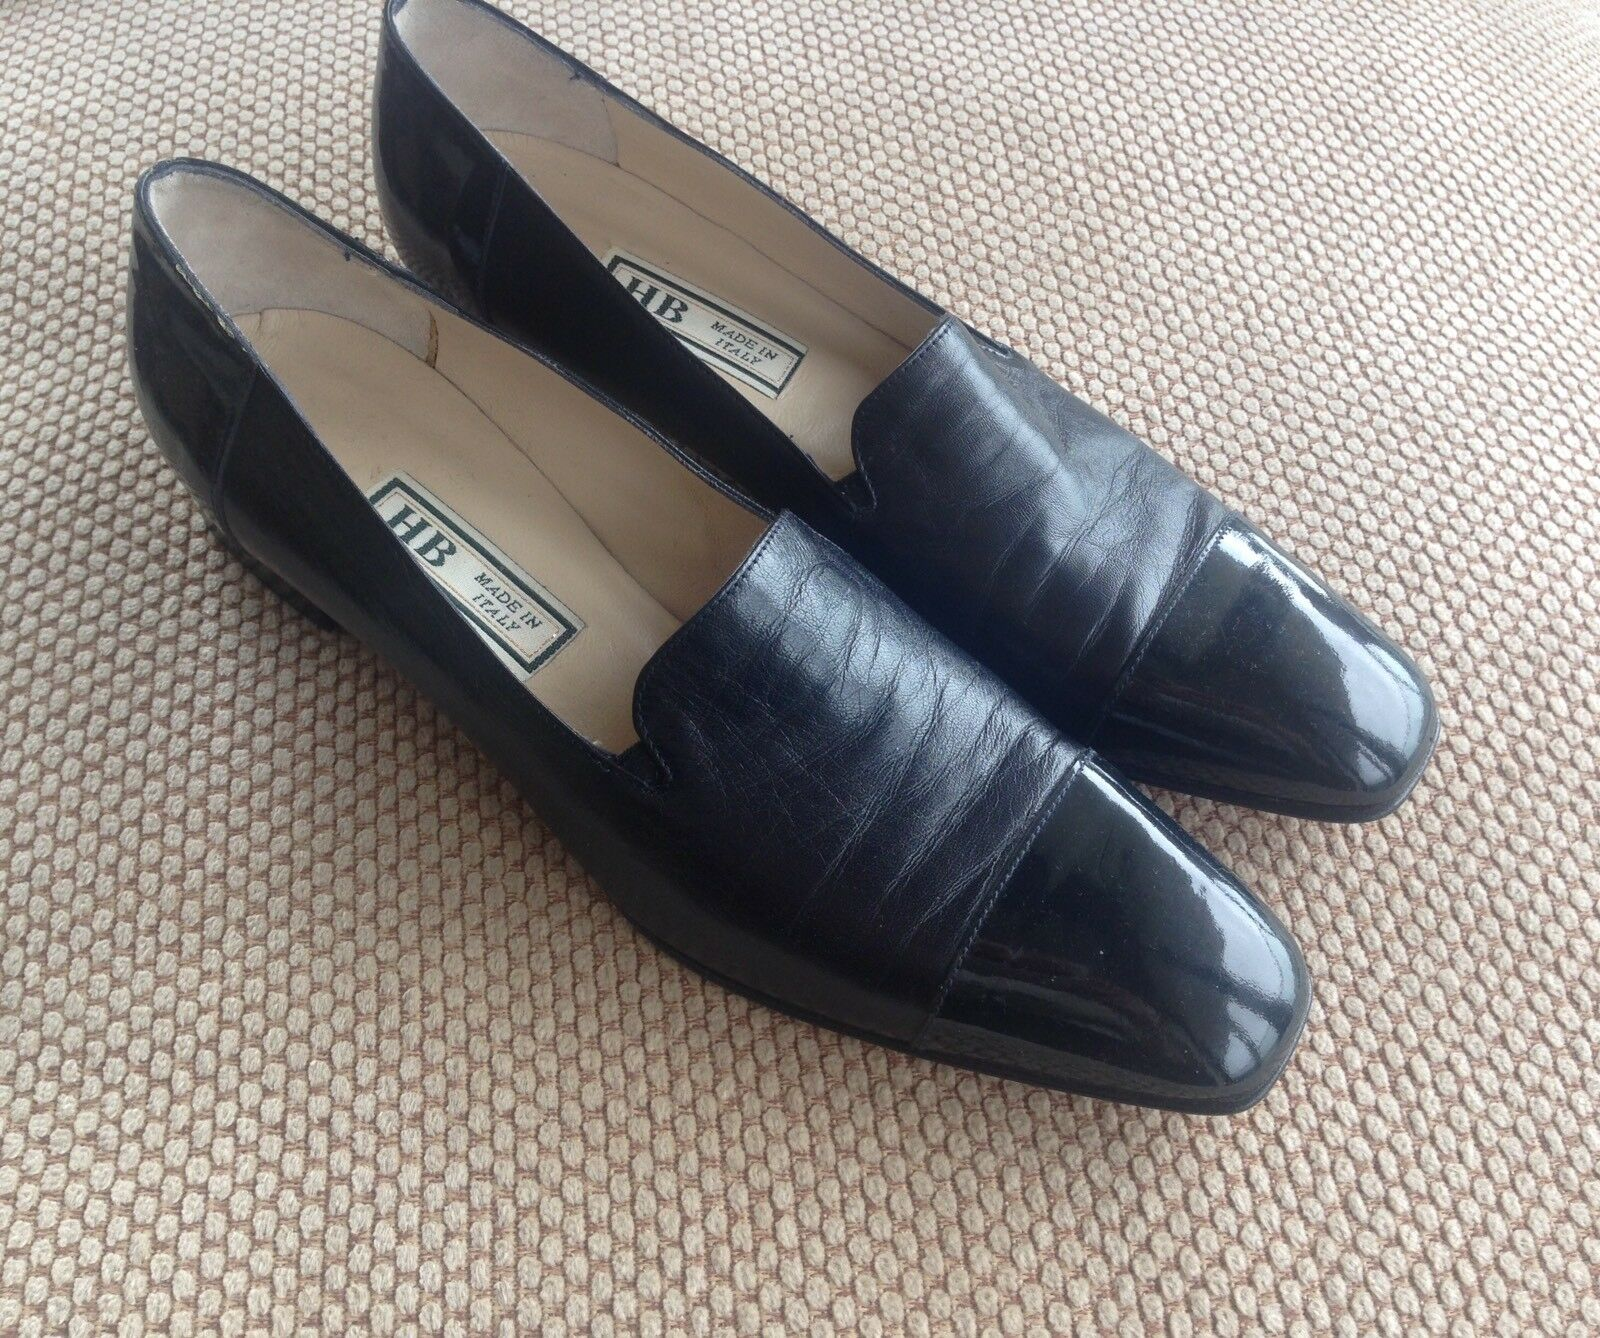 Women's Black Italian Leather shoes Size 9 UK Very Slim Fit